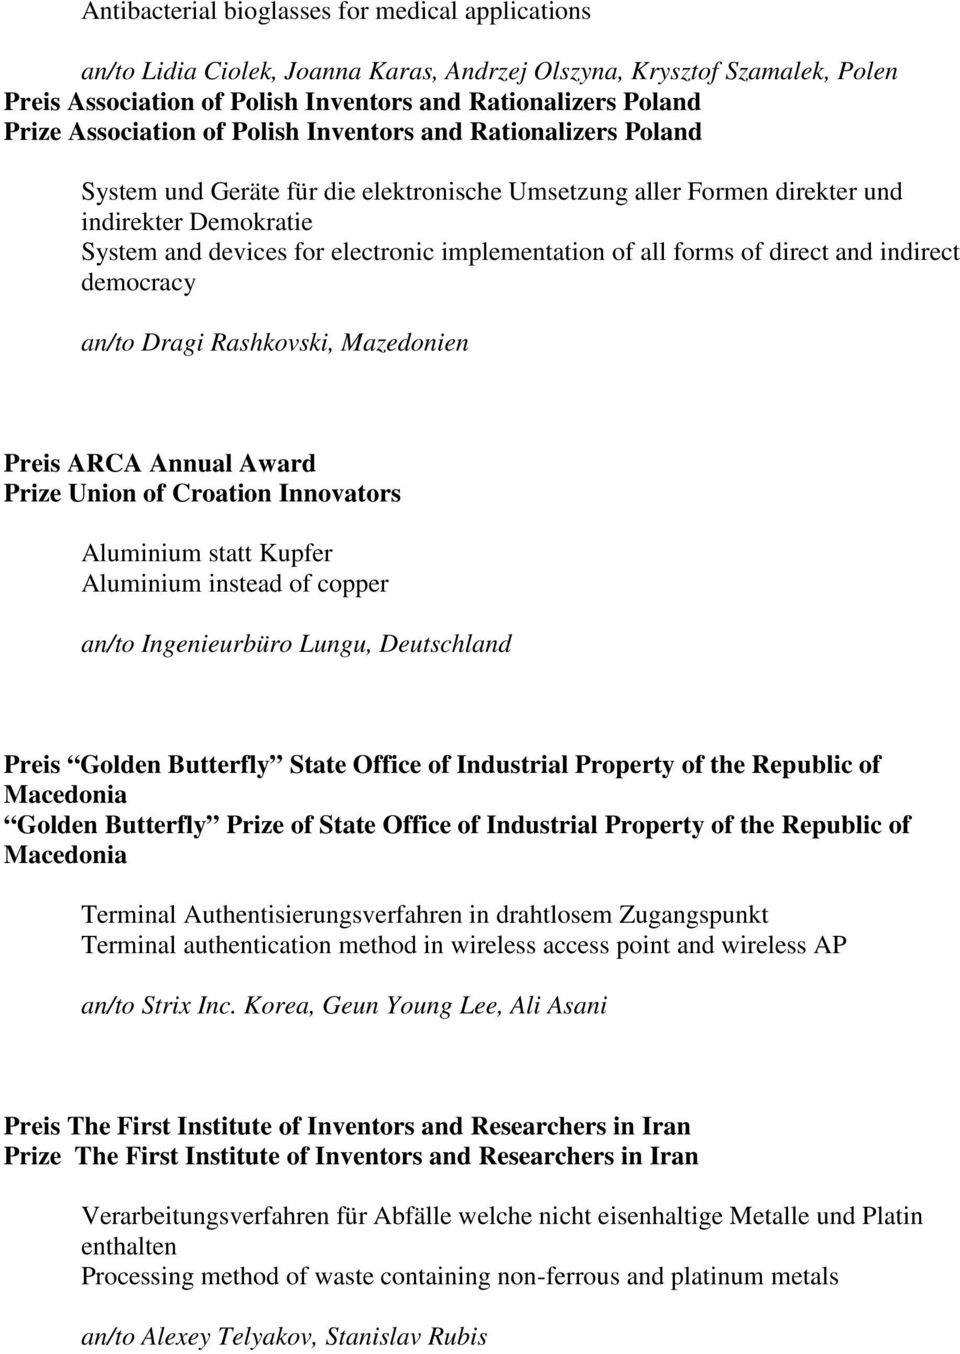 implementation of all forms of direct and indirect democracy an/to Dragi Rashkovski, Mazedonien Preis ARCA Annual Award Prize Union of Croation Innovators Aluminium statt Kupfer Aluminium instead of